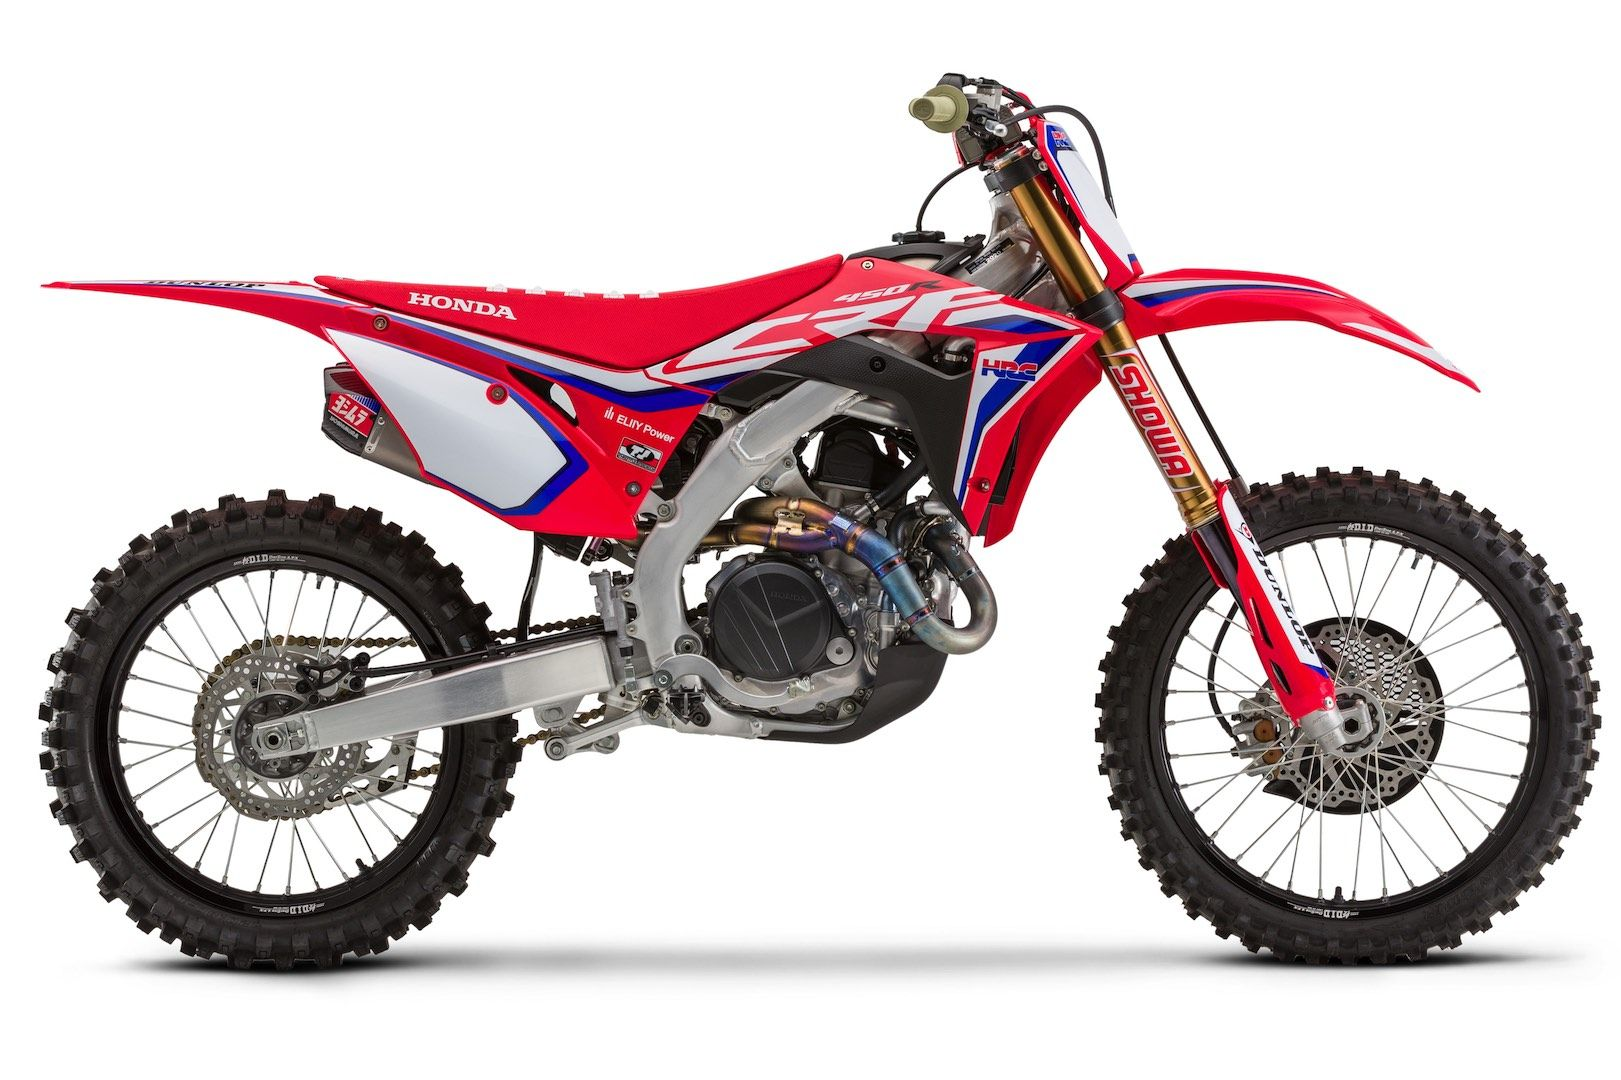 2020 Honda Crf450r Crf450rwe And Crf450rx First Look 11 Fast Facts Honda Motocross Action Motocross